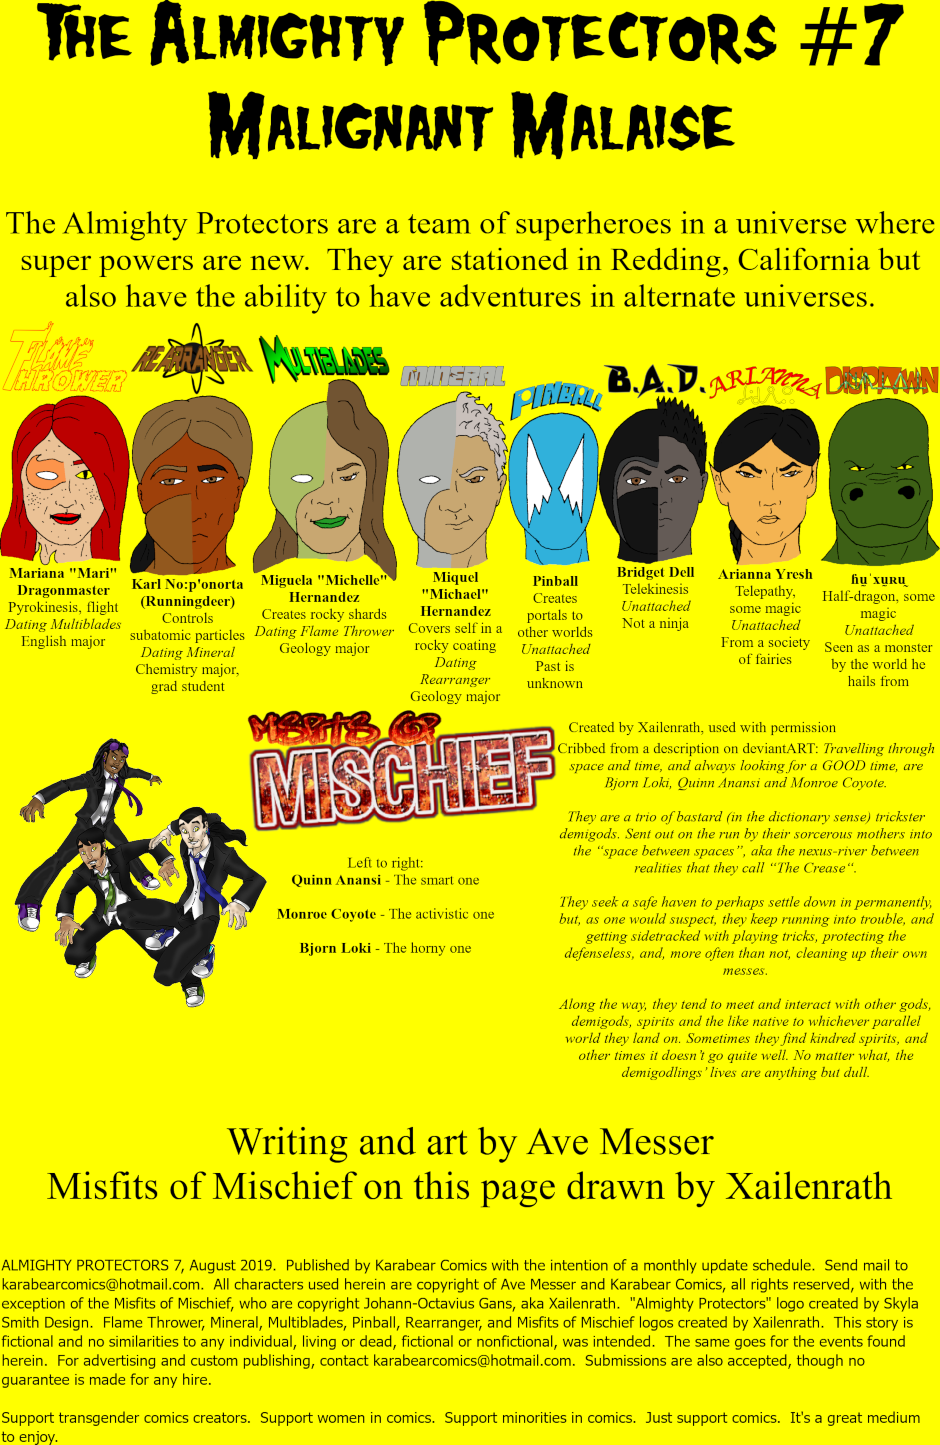 Issue 7: Malignant Malaise - Inside cover